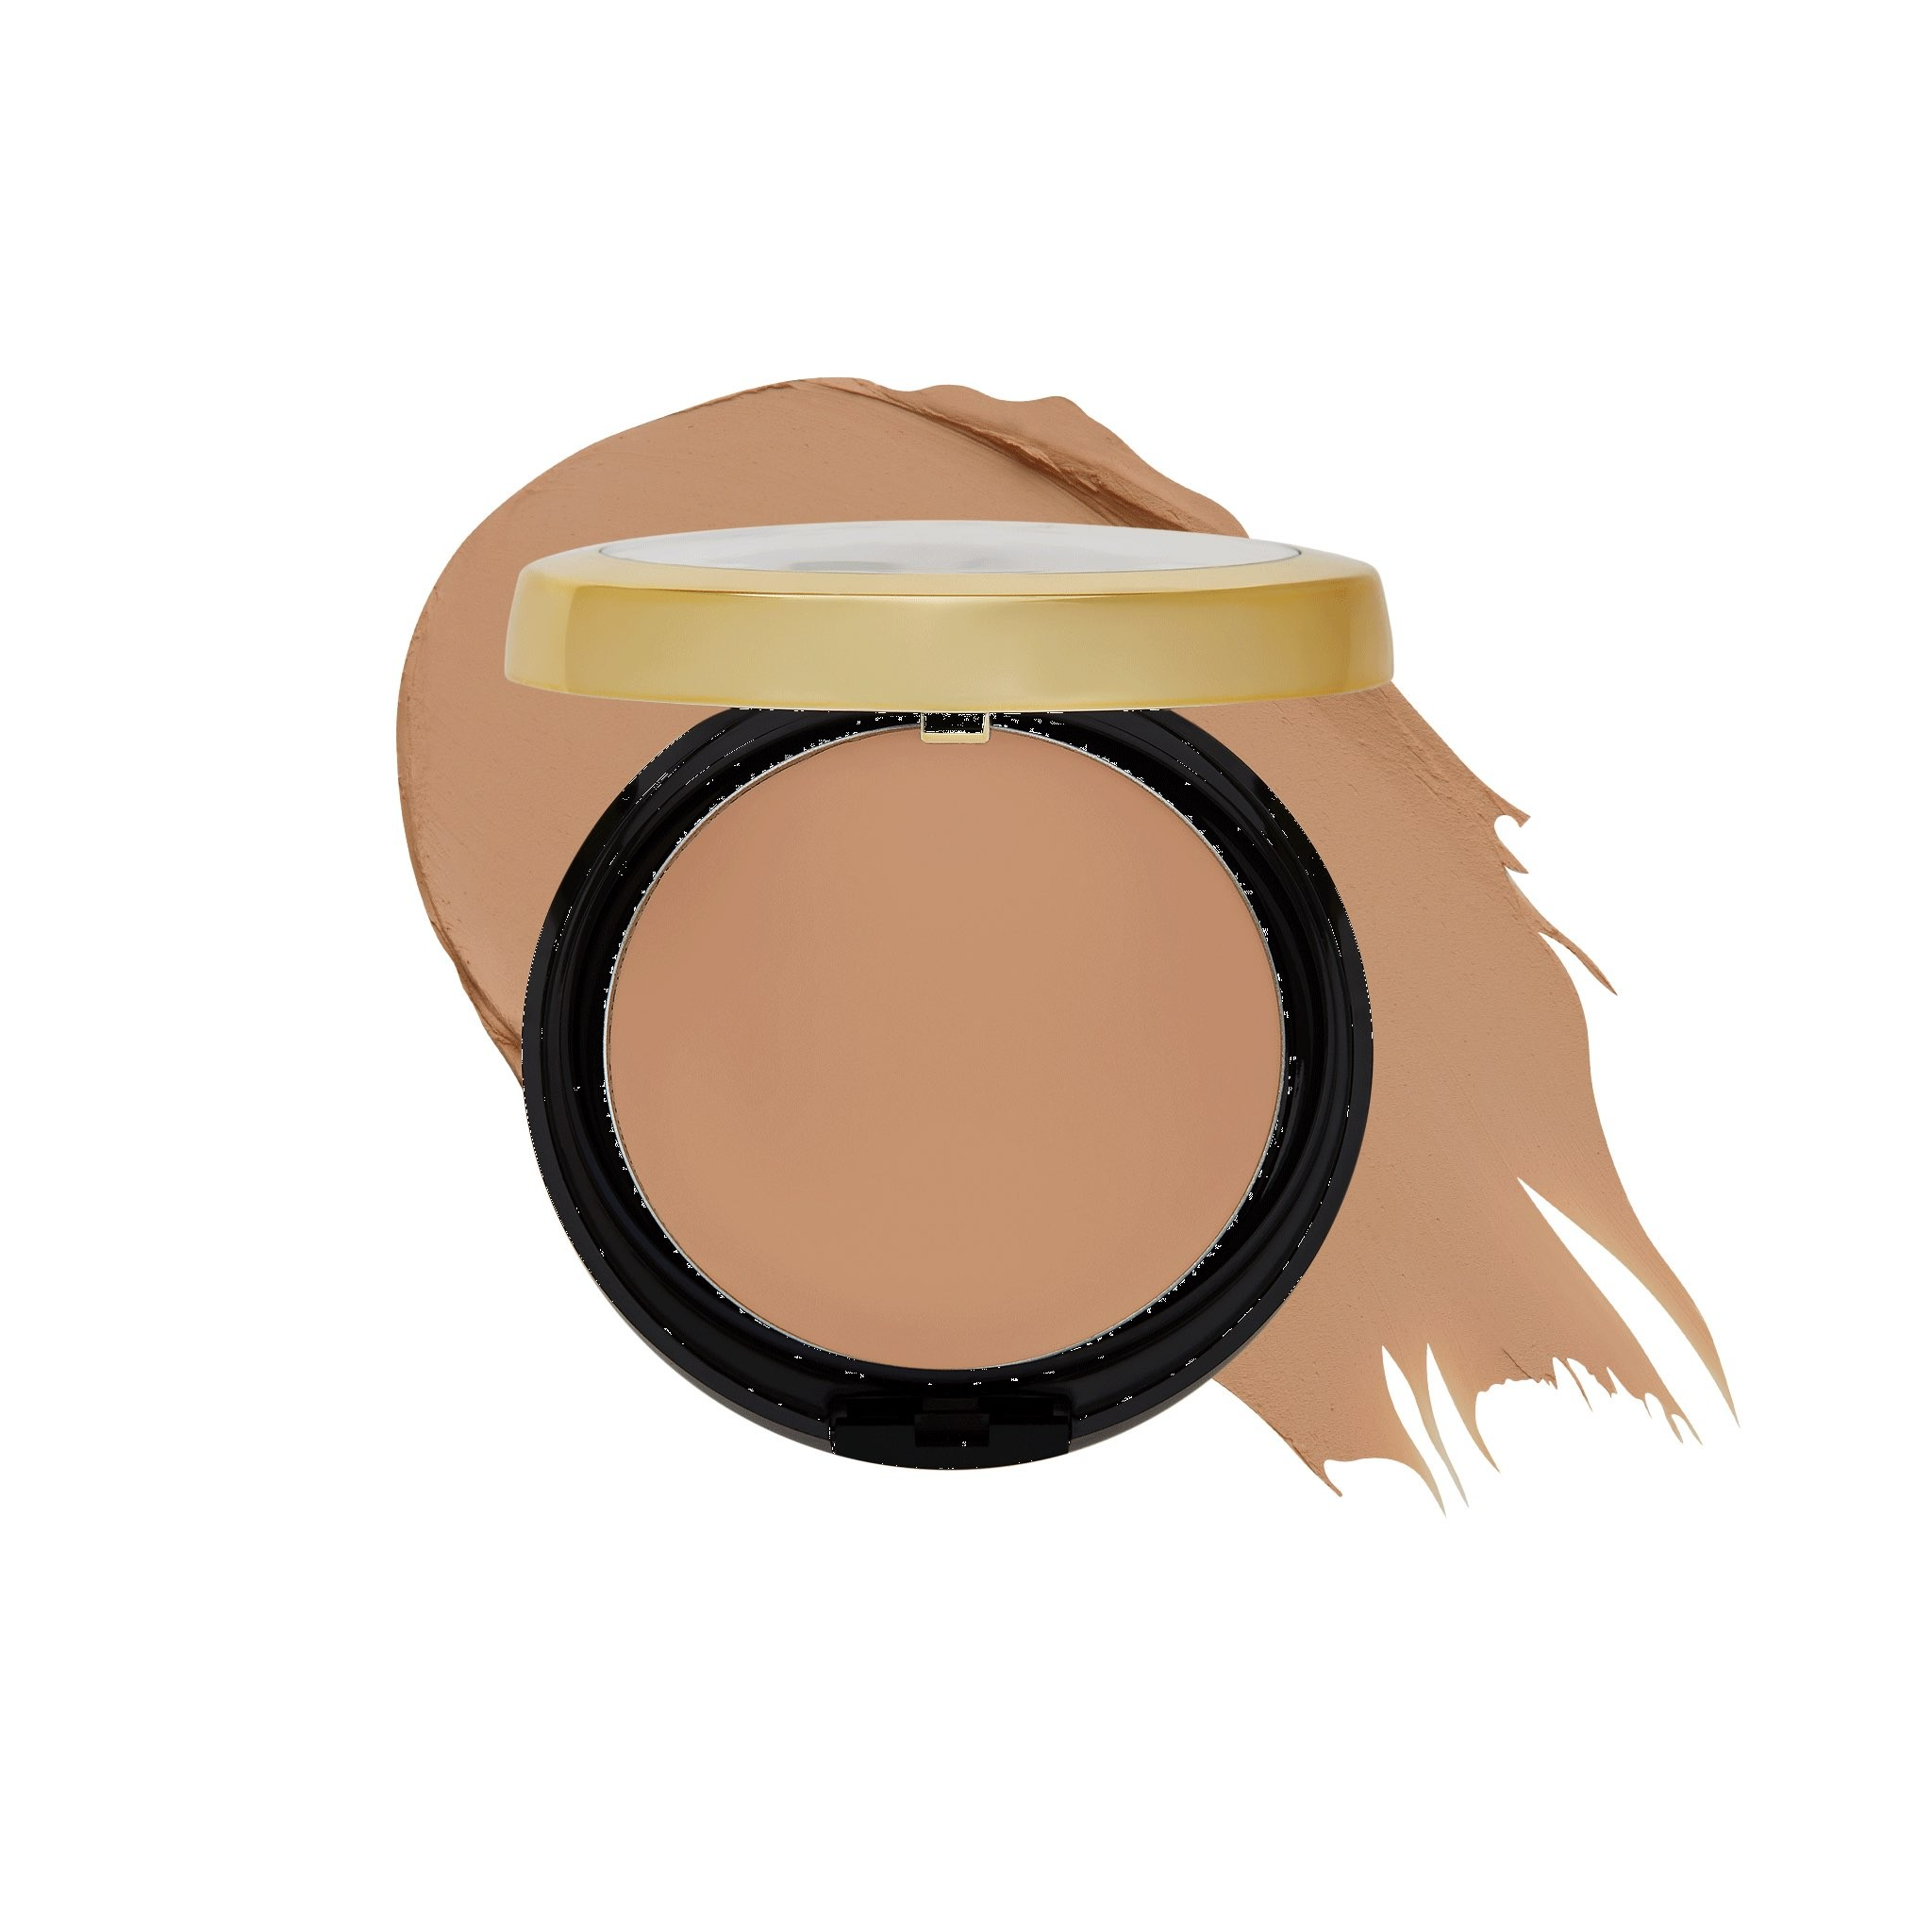 Foundation - Conceal + Perfect Smooth Finish Cream To Powder Foundation